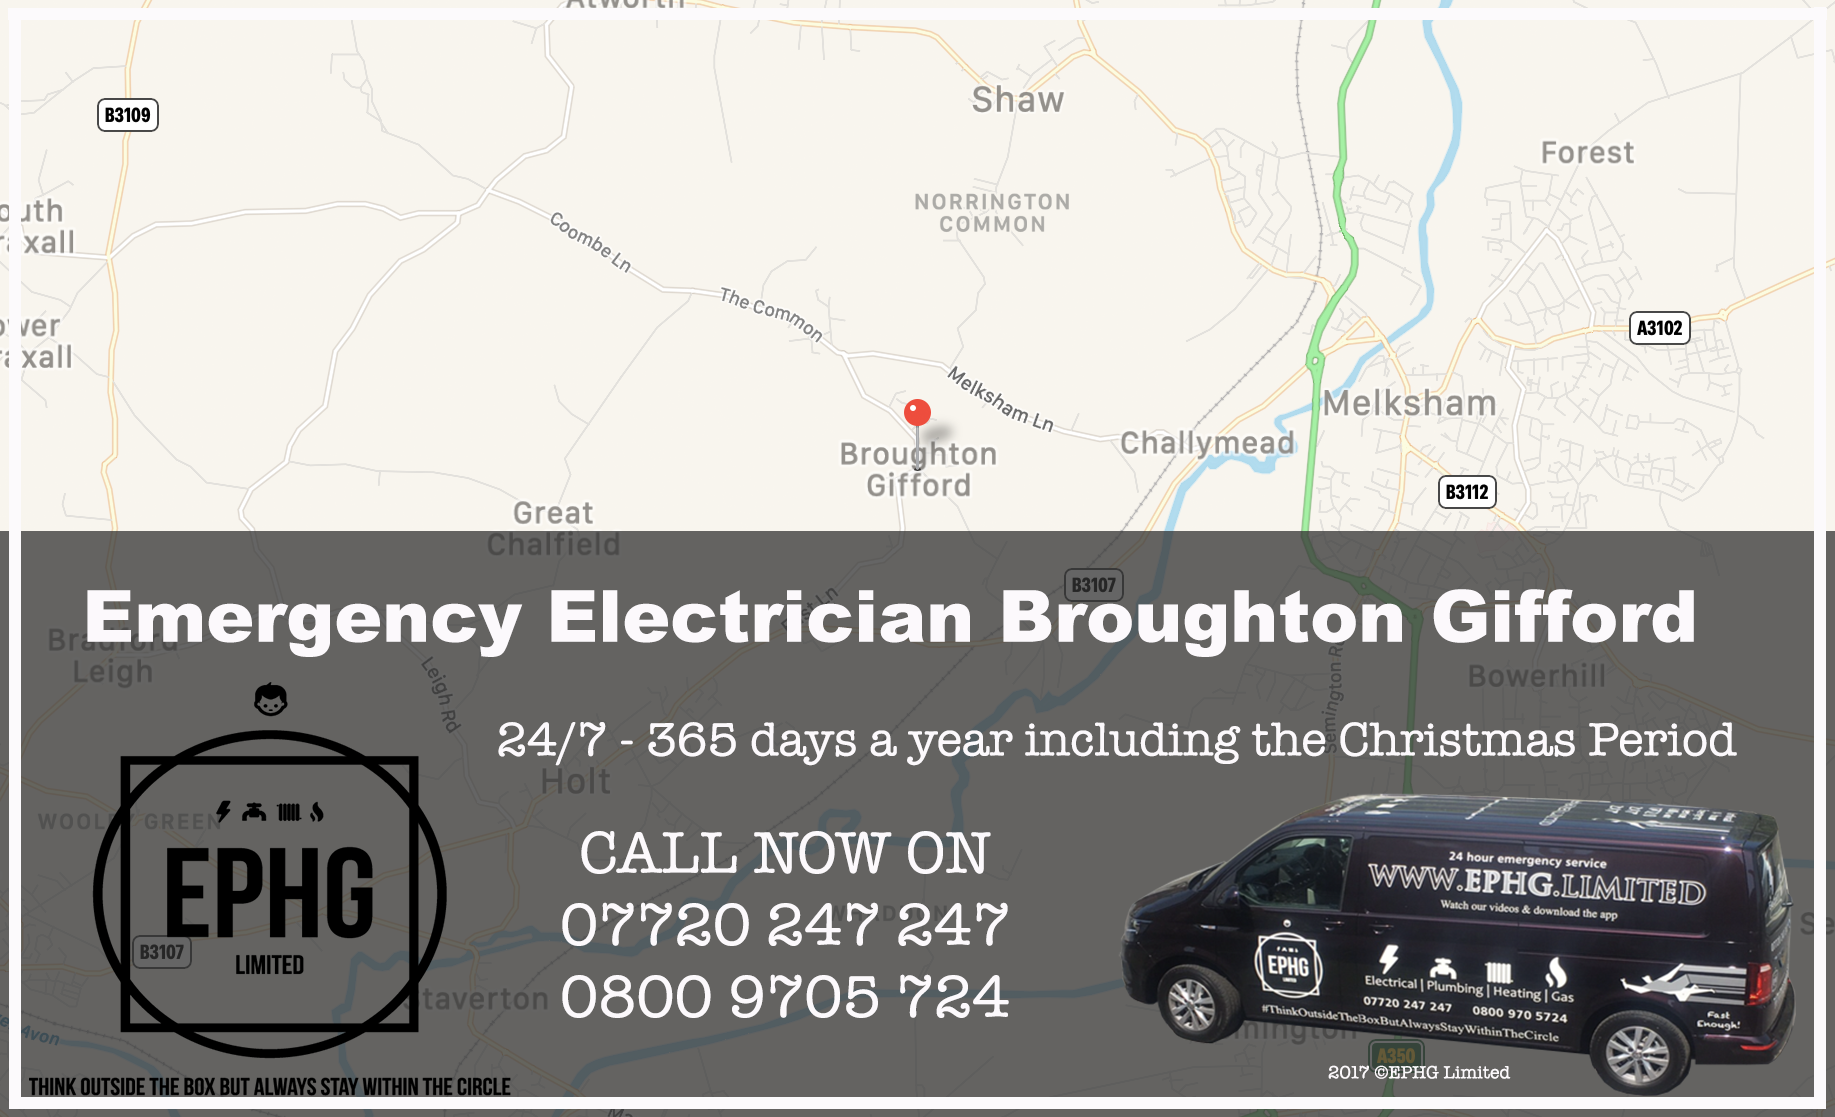 Emergency Electrician Broughton Gifford